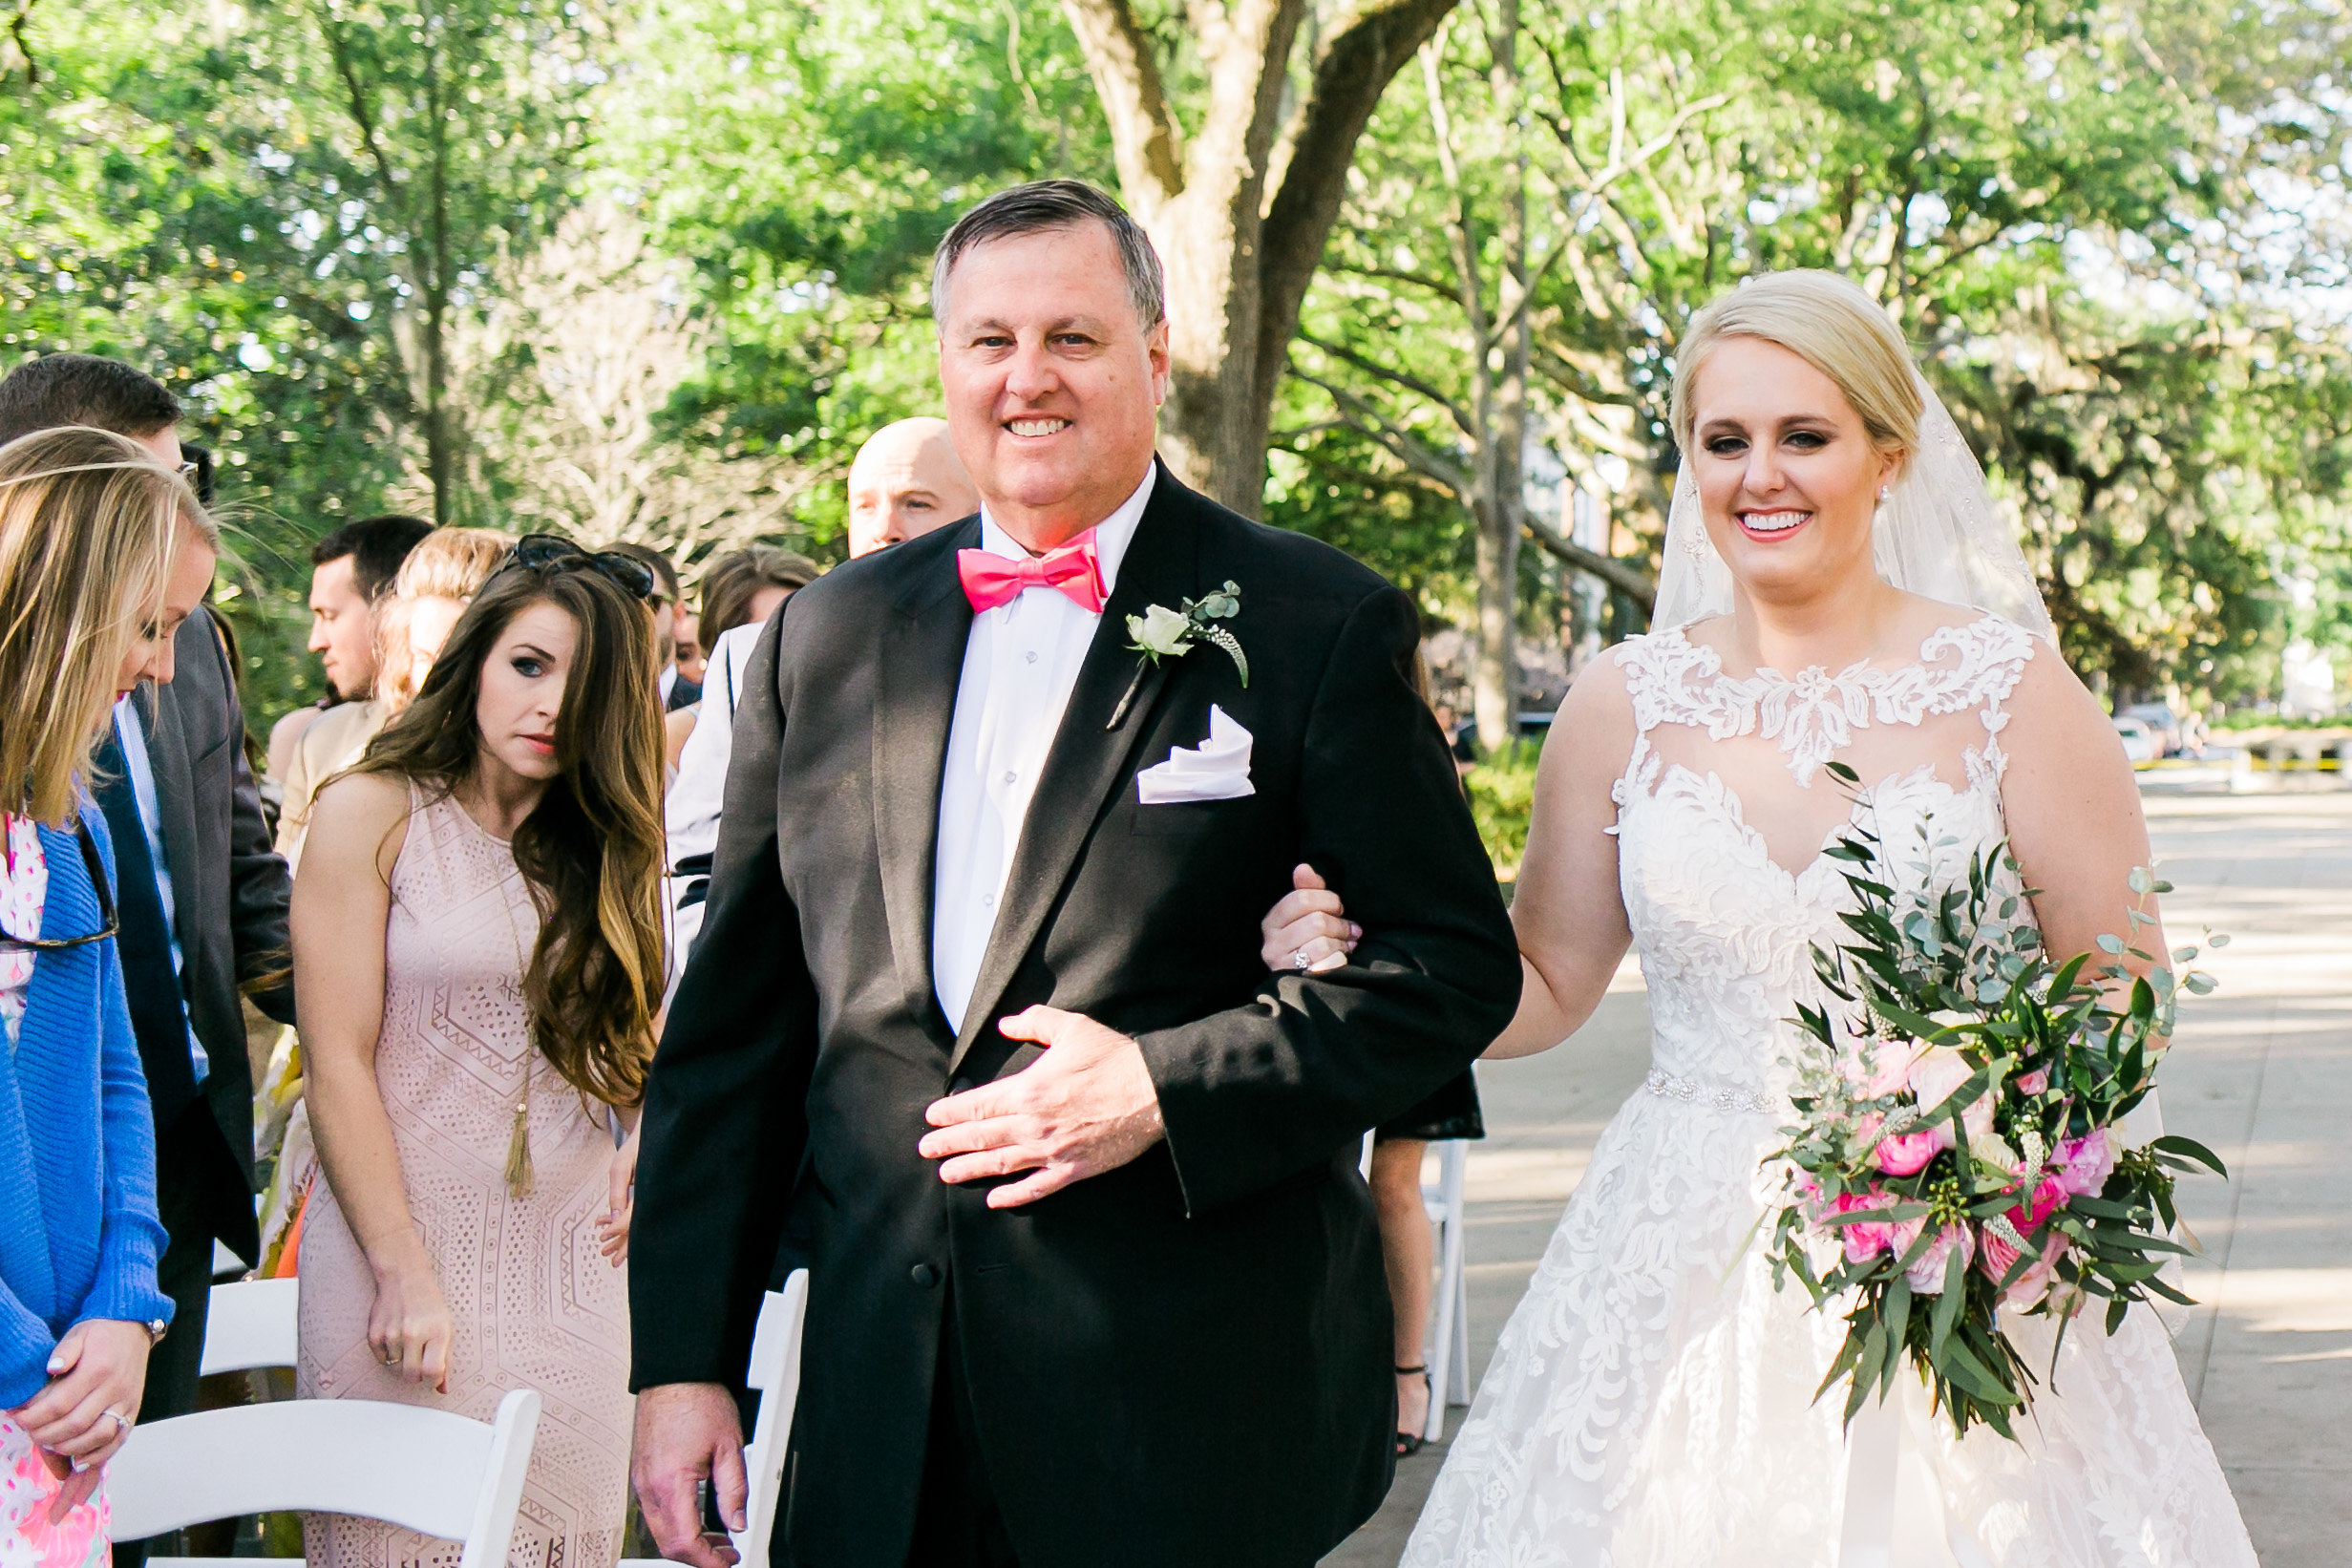 Outdoor wedding ceremony at Forsyth Park in Savannah GA  //  A Lowcountry Wedding Magazine